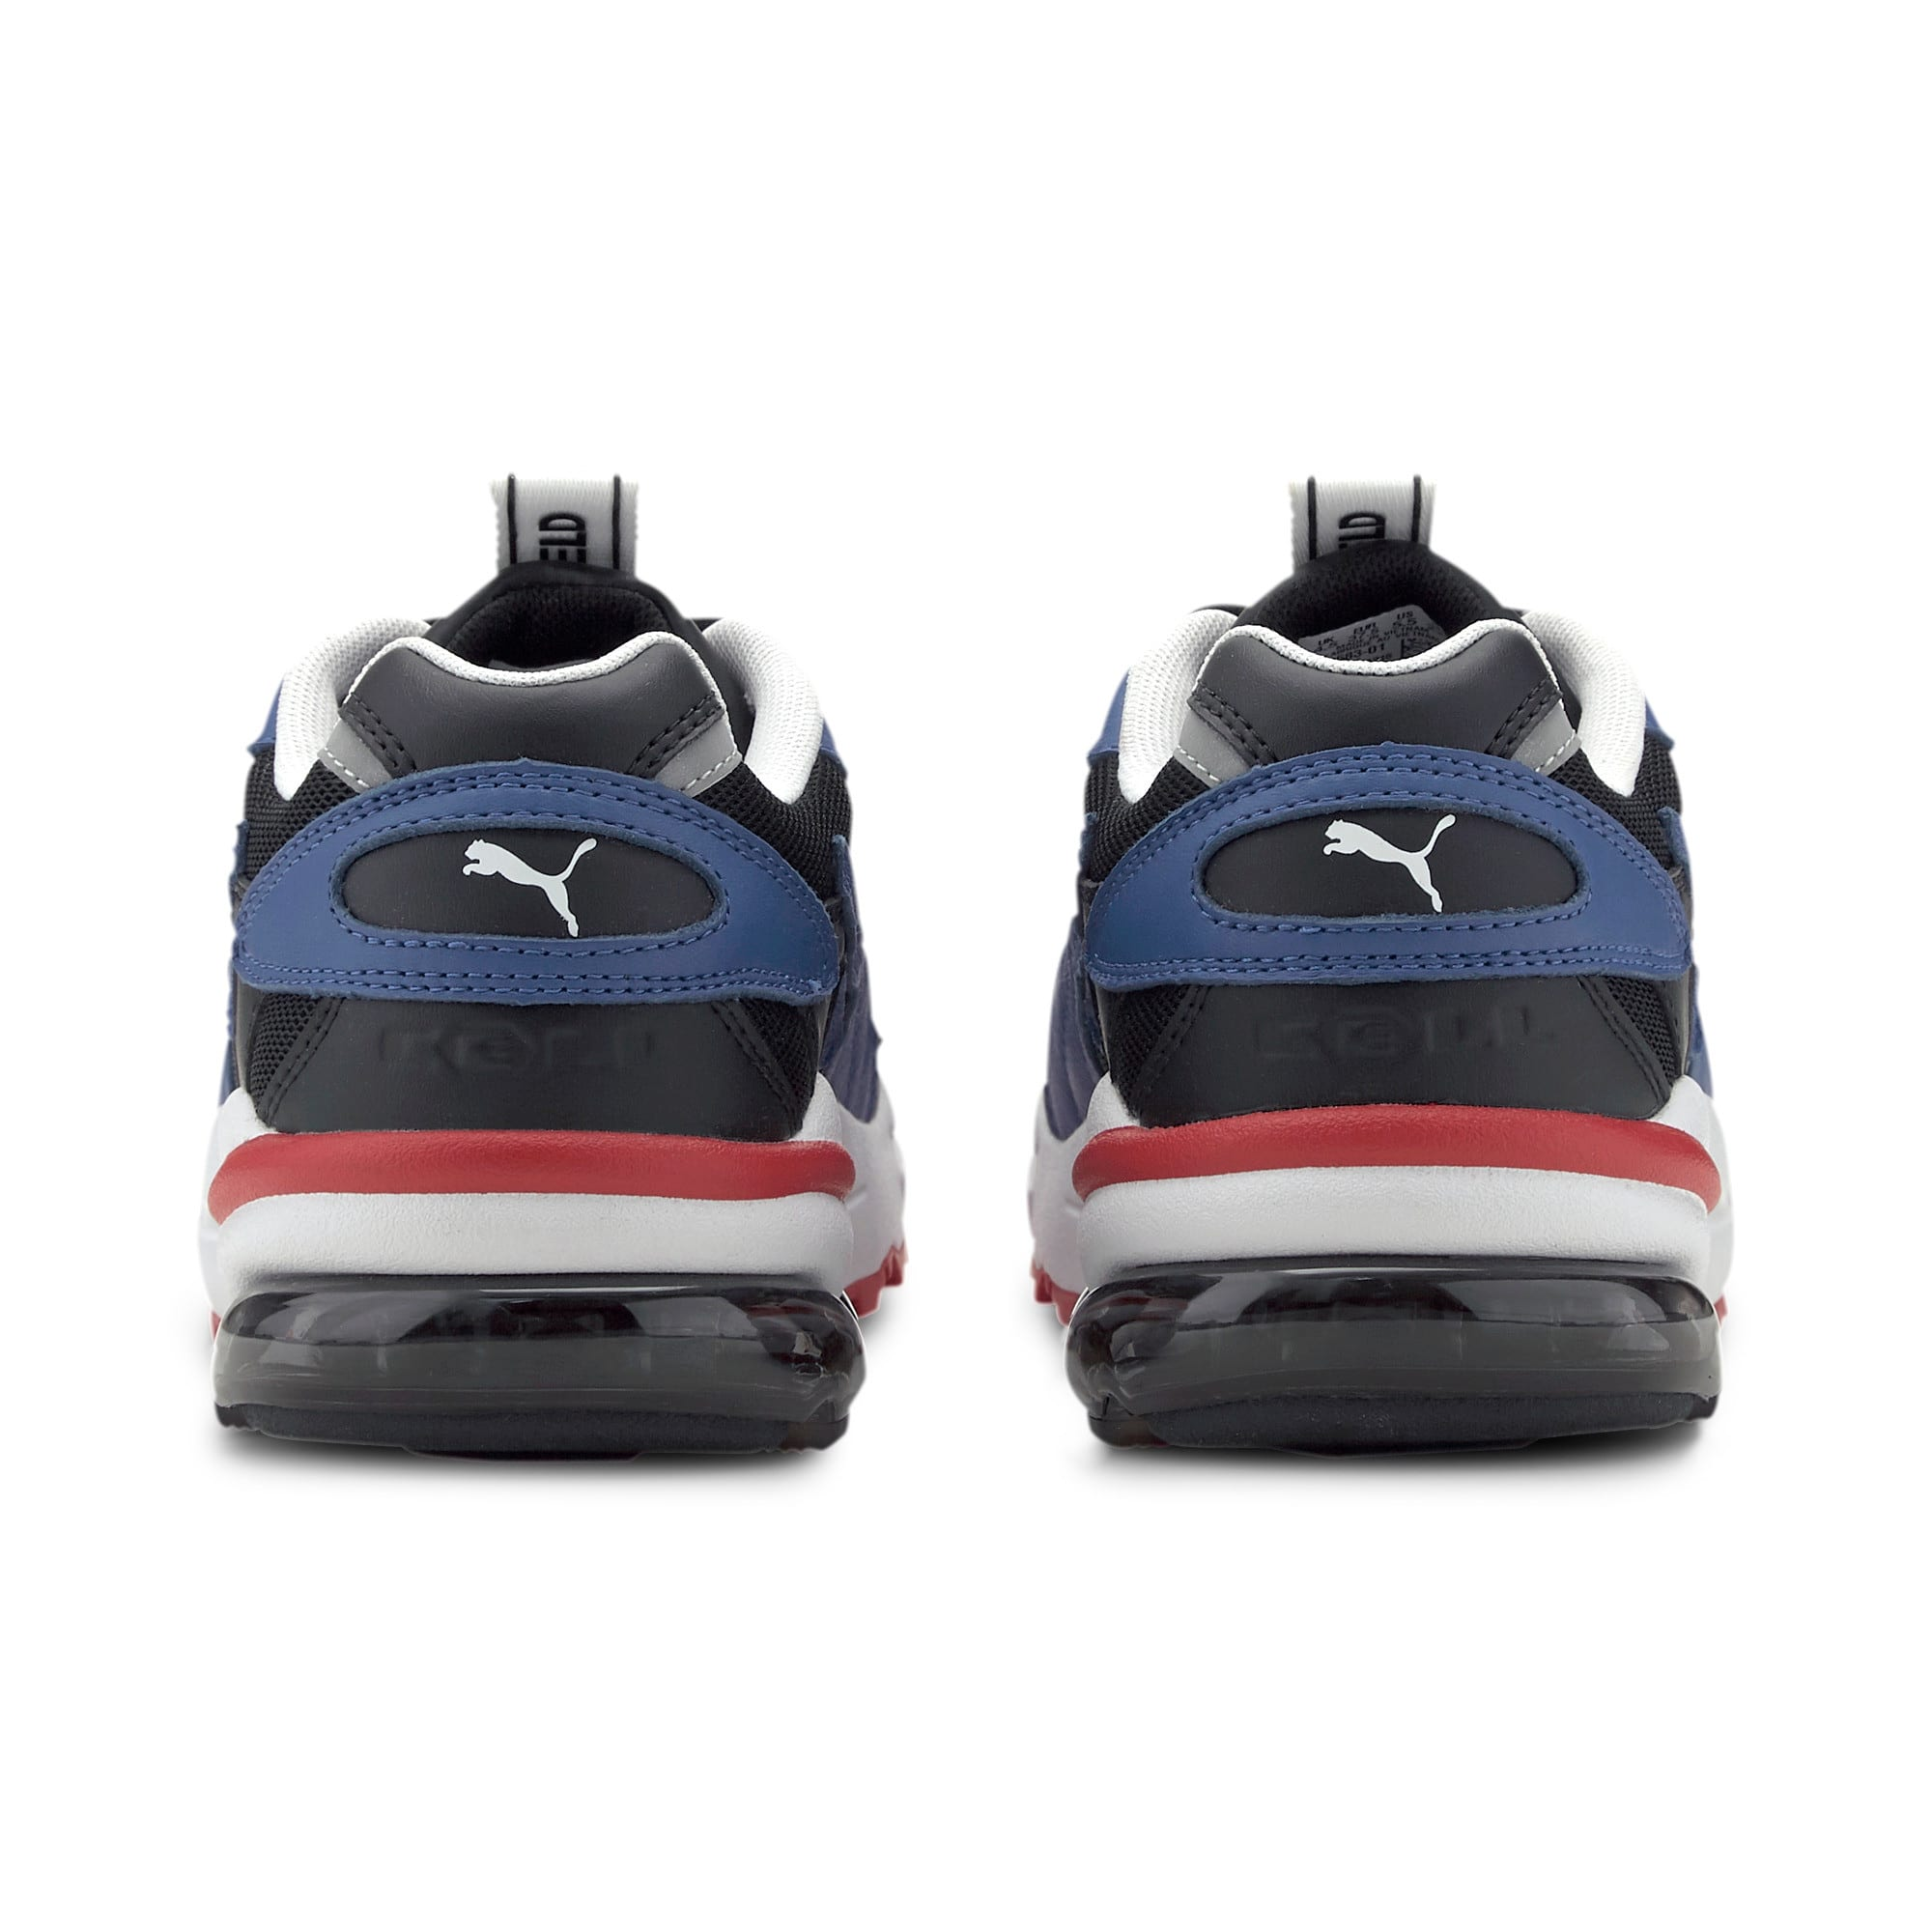 Thumbnail 4 of PUMA x KARL LAGERFELD CELL Alien Trainers, Puma Black-TRUE BLUE, medium